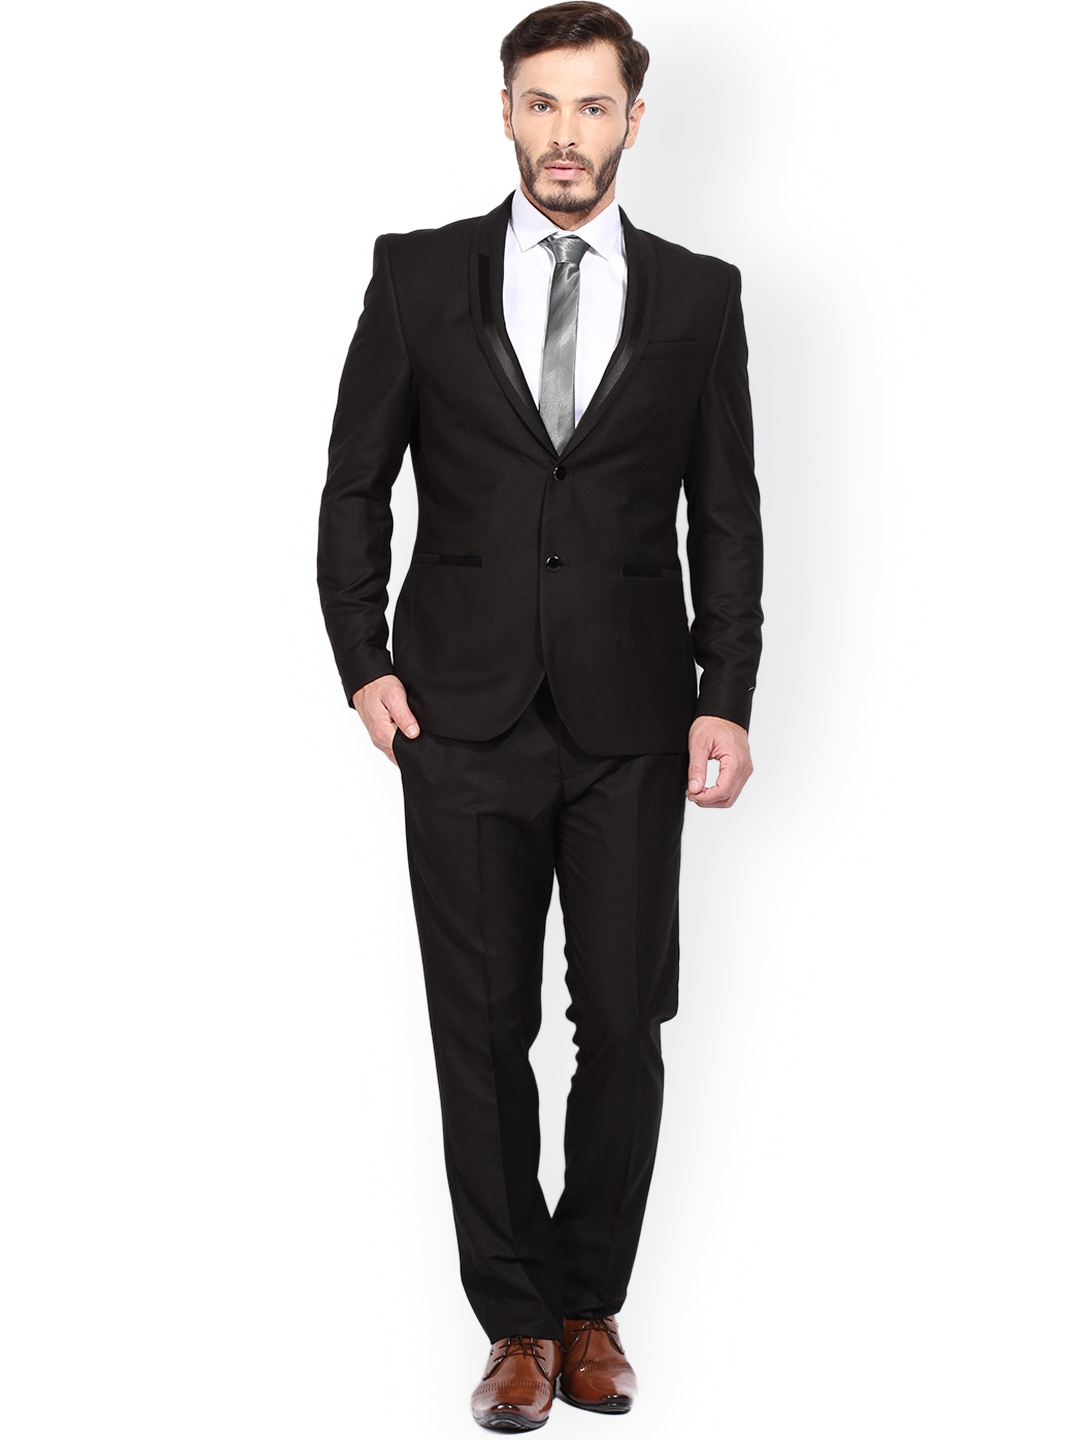 Buy Black Suit | Tulips Clothing